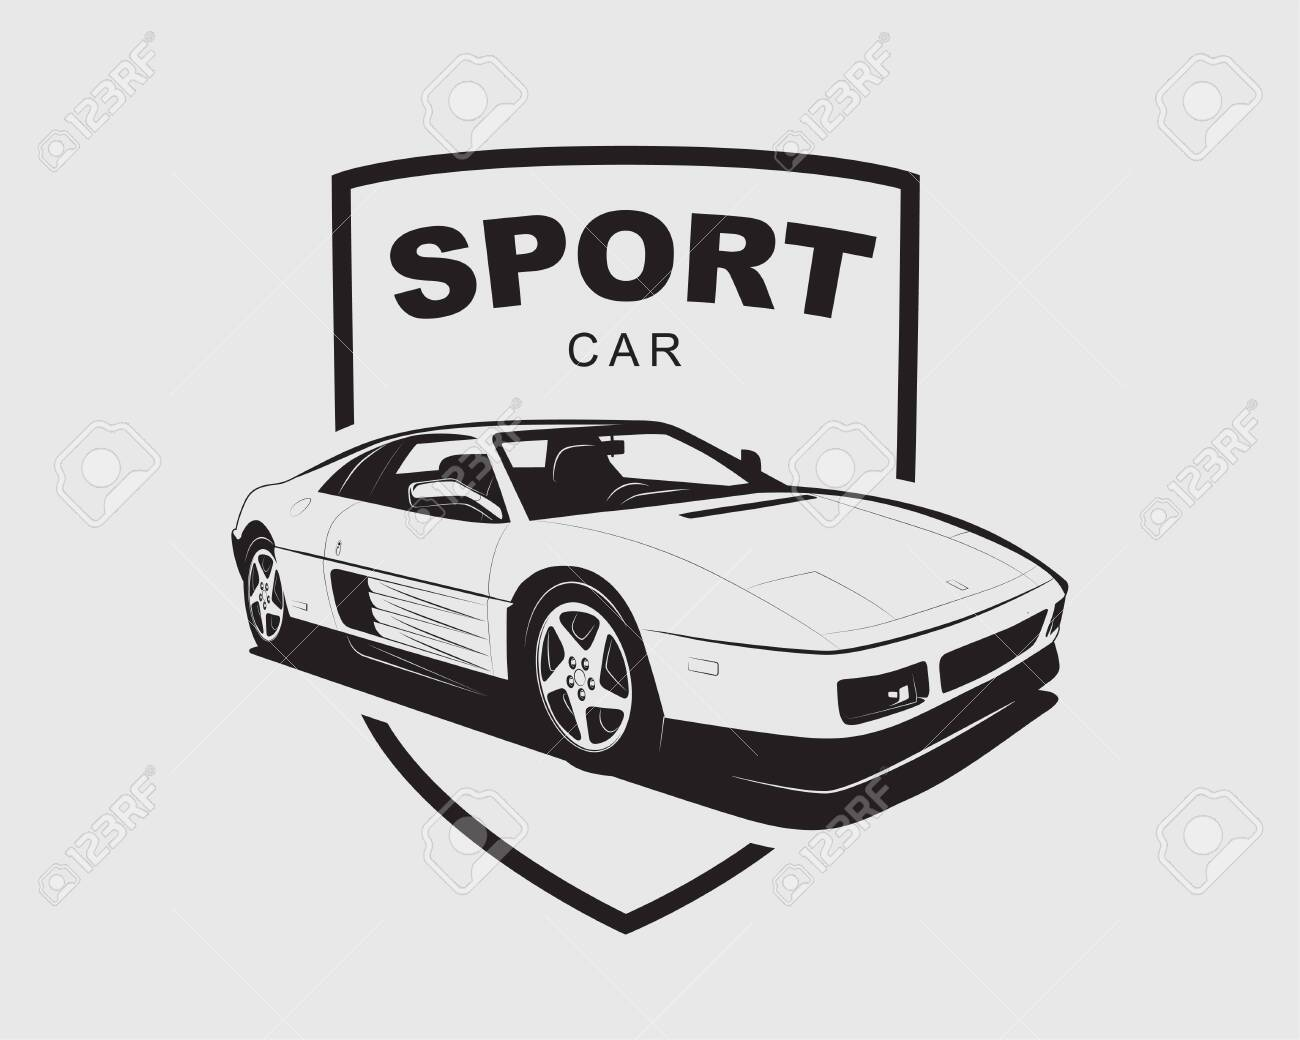 Supercar Vector Sport Car Label Auto Garage Symbol Template Royalty Free Cliparts Vectors And Stock Illustration Image 129813357